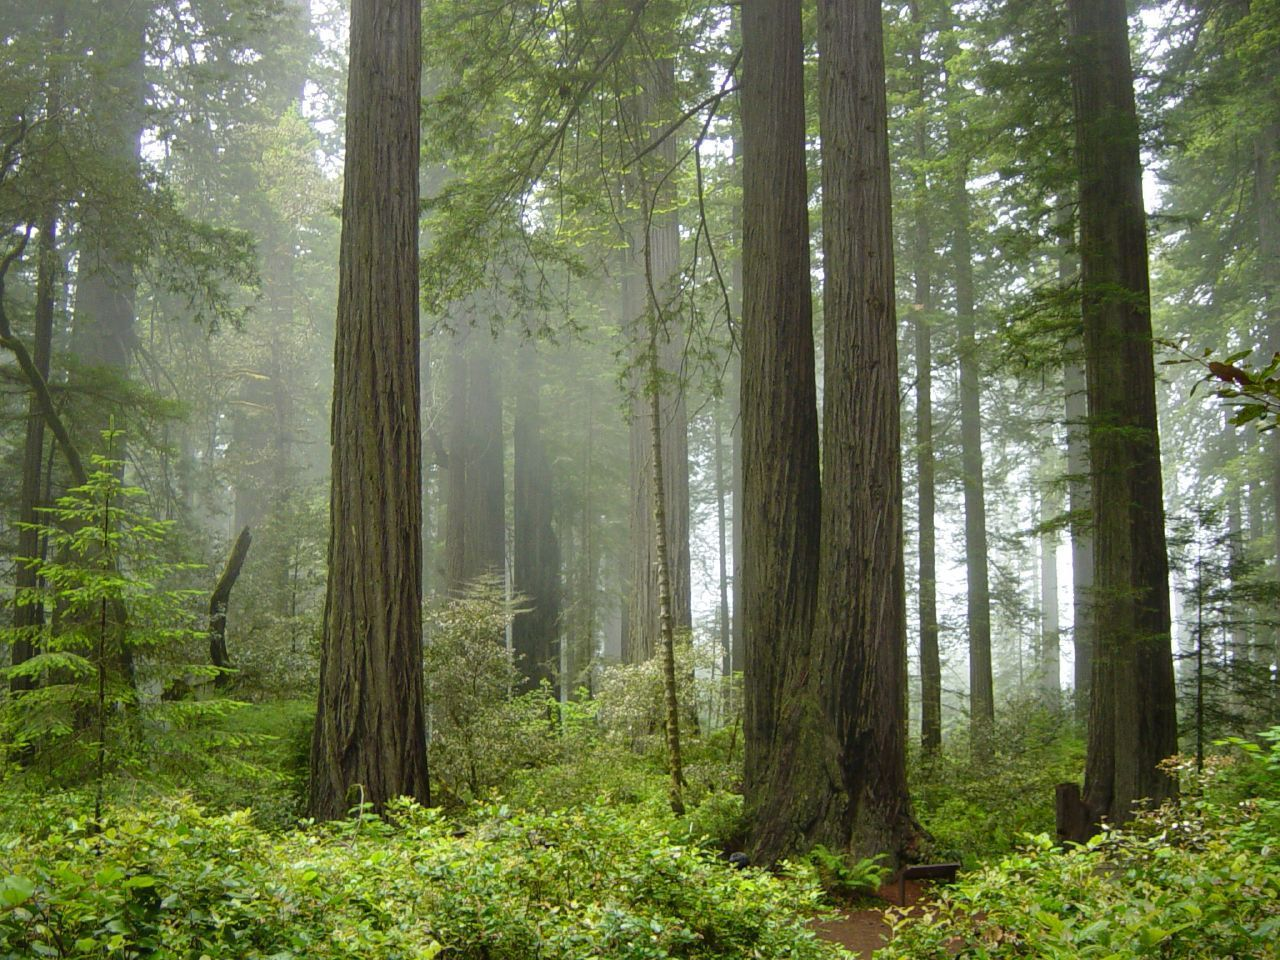 """Coast Redwood forest and understory plants"" by Michael Schweppe under CC BY 2.0"